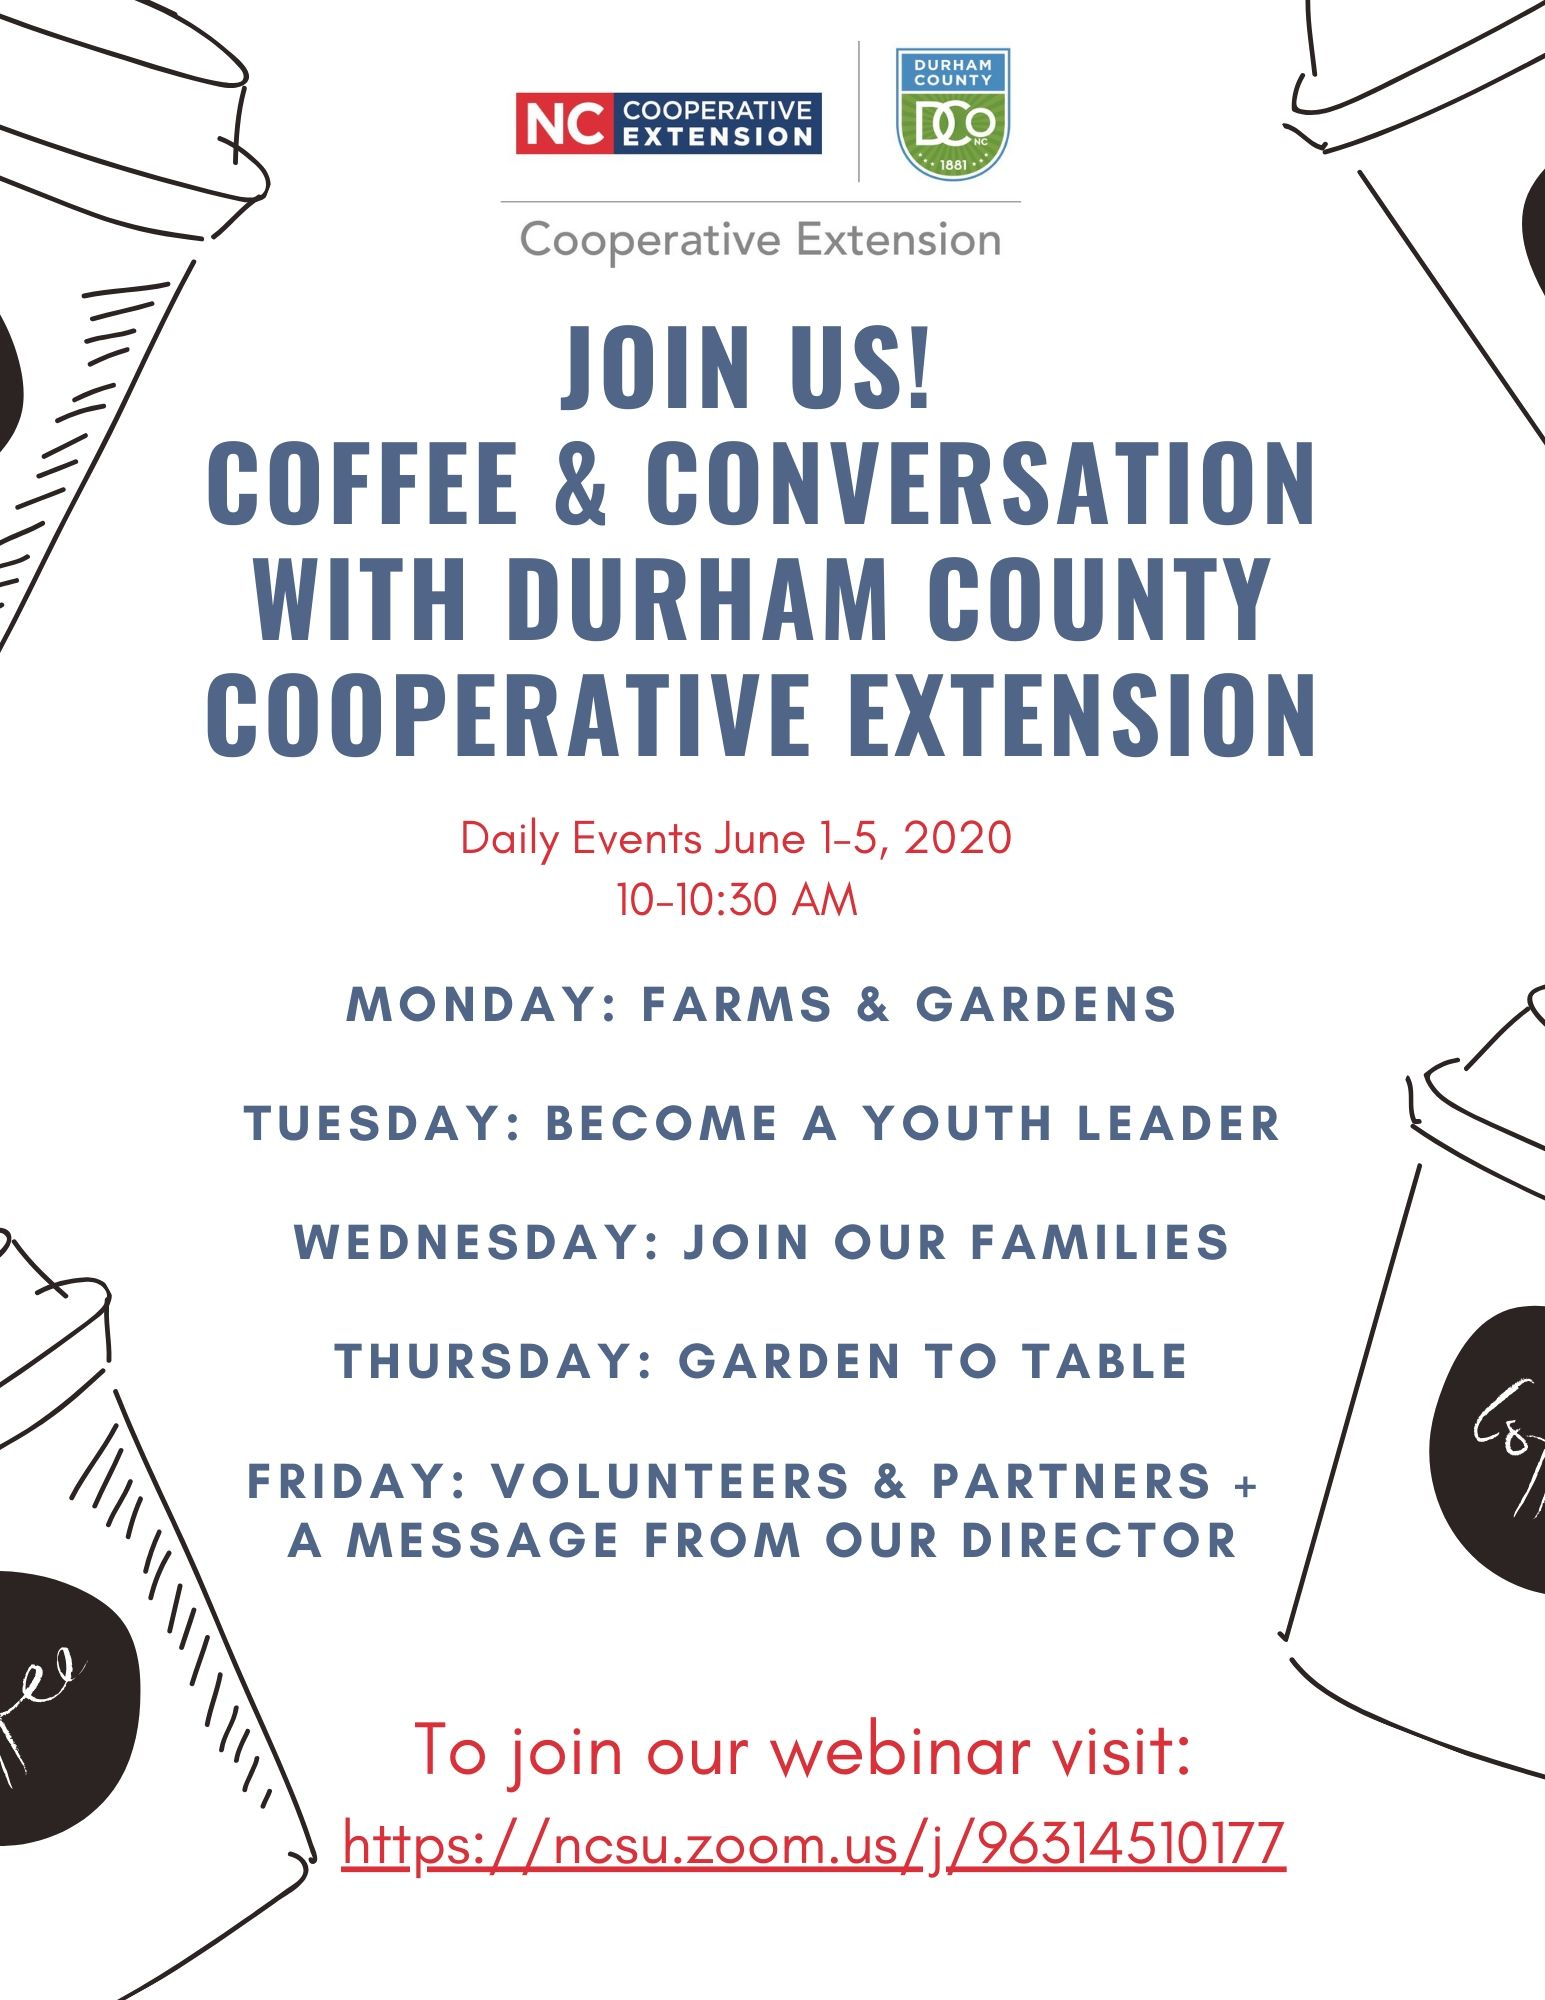 Join Us! Coffee & Conversation with Durham County Cooperative Extension